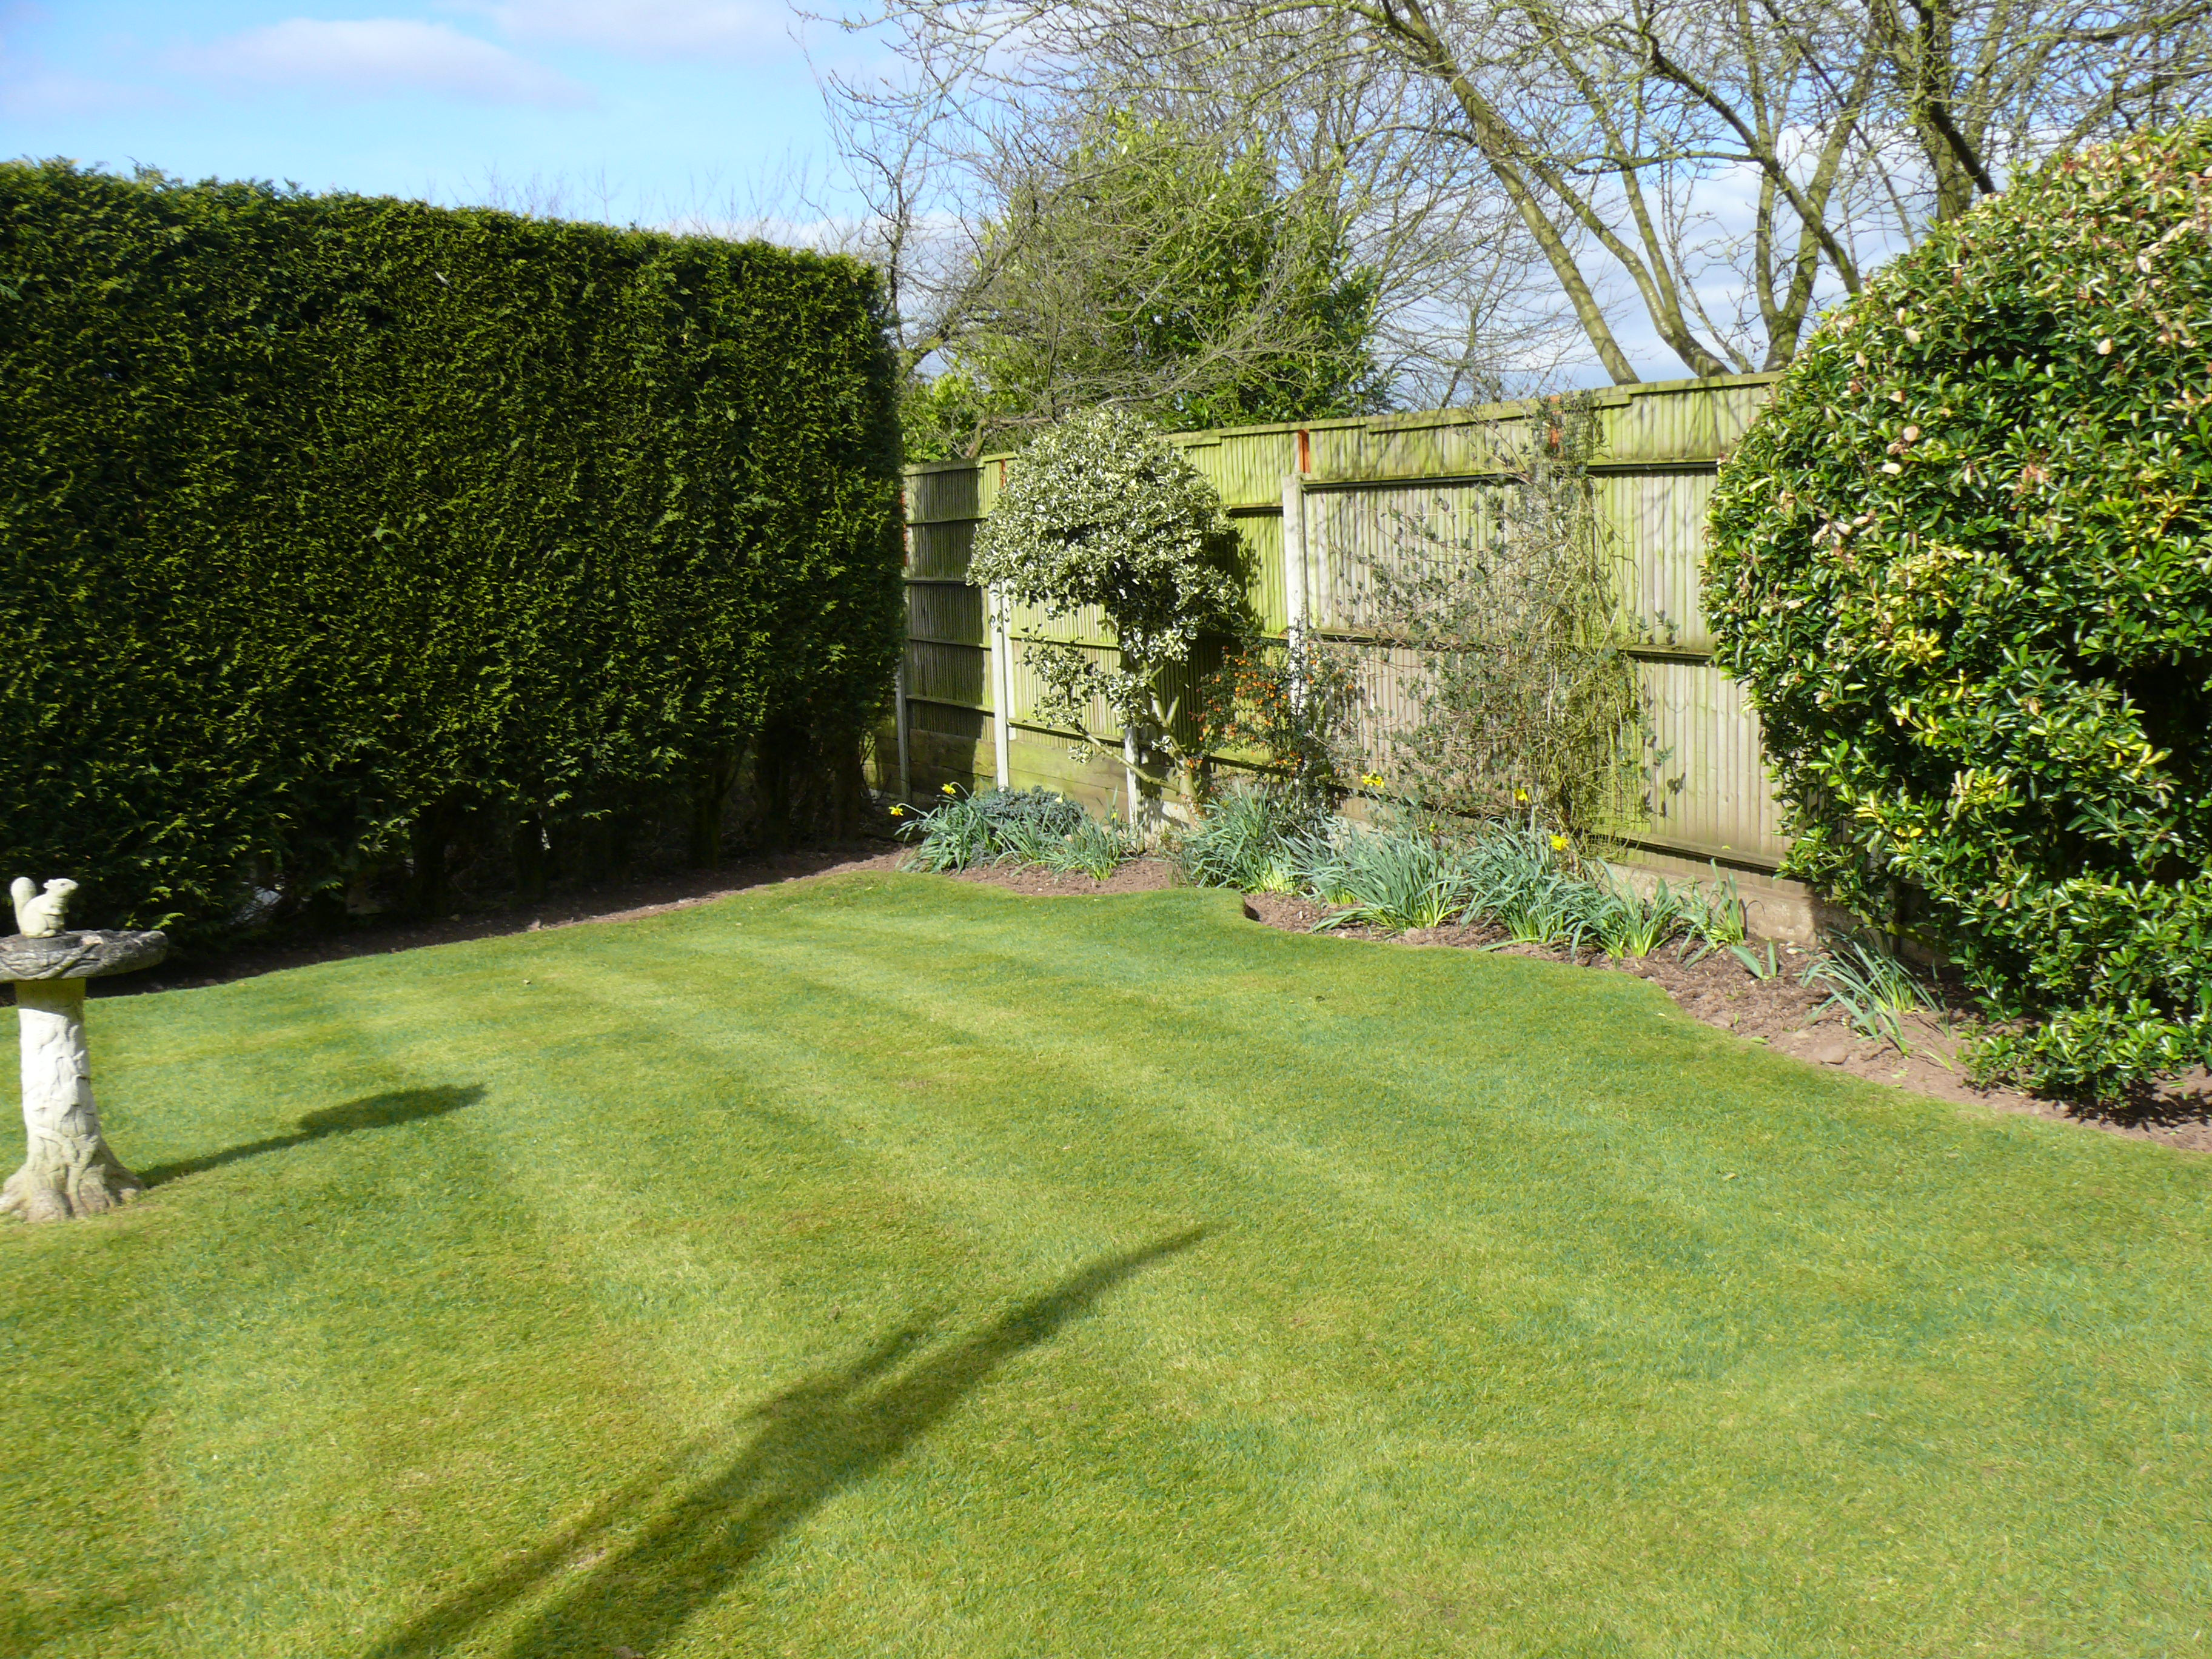 Garden Maintenance with lawns mowed and hedges cut